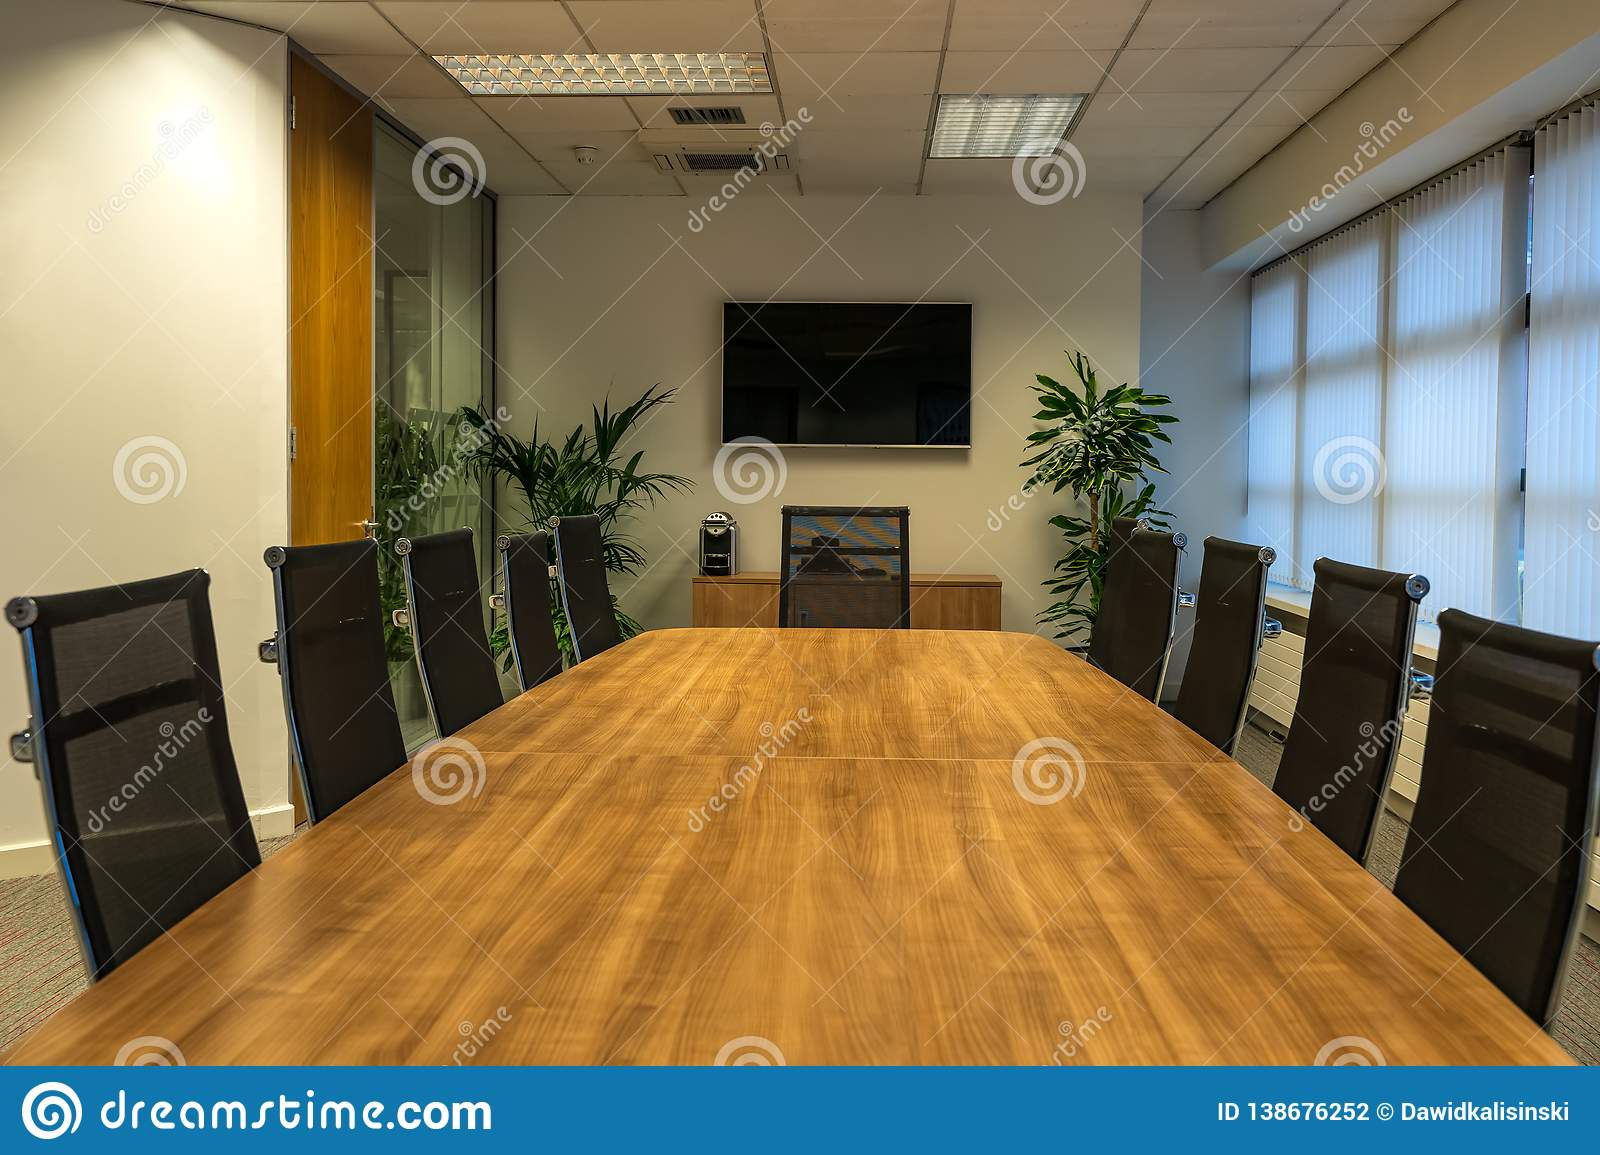 Modern interior of boardroom, meeting or seminar room with chairs and long wooden table at workplace or office, green plants and T